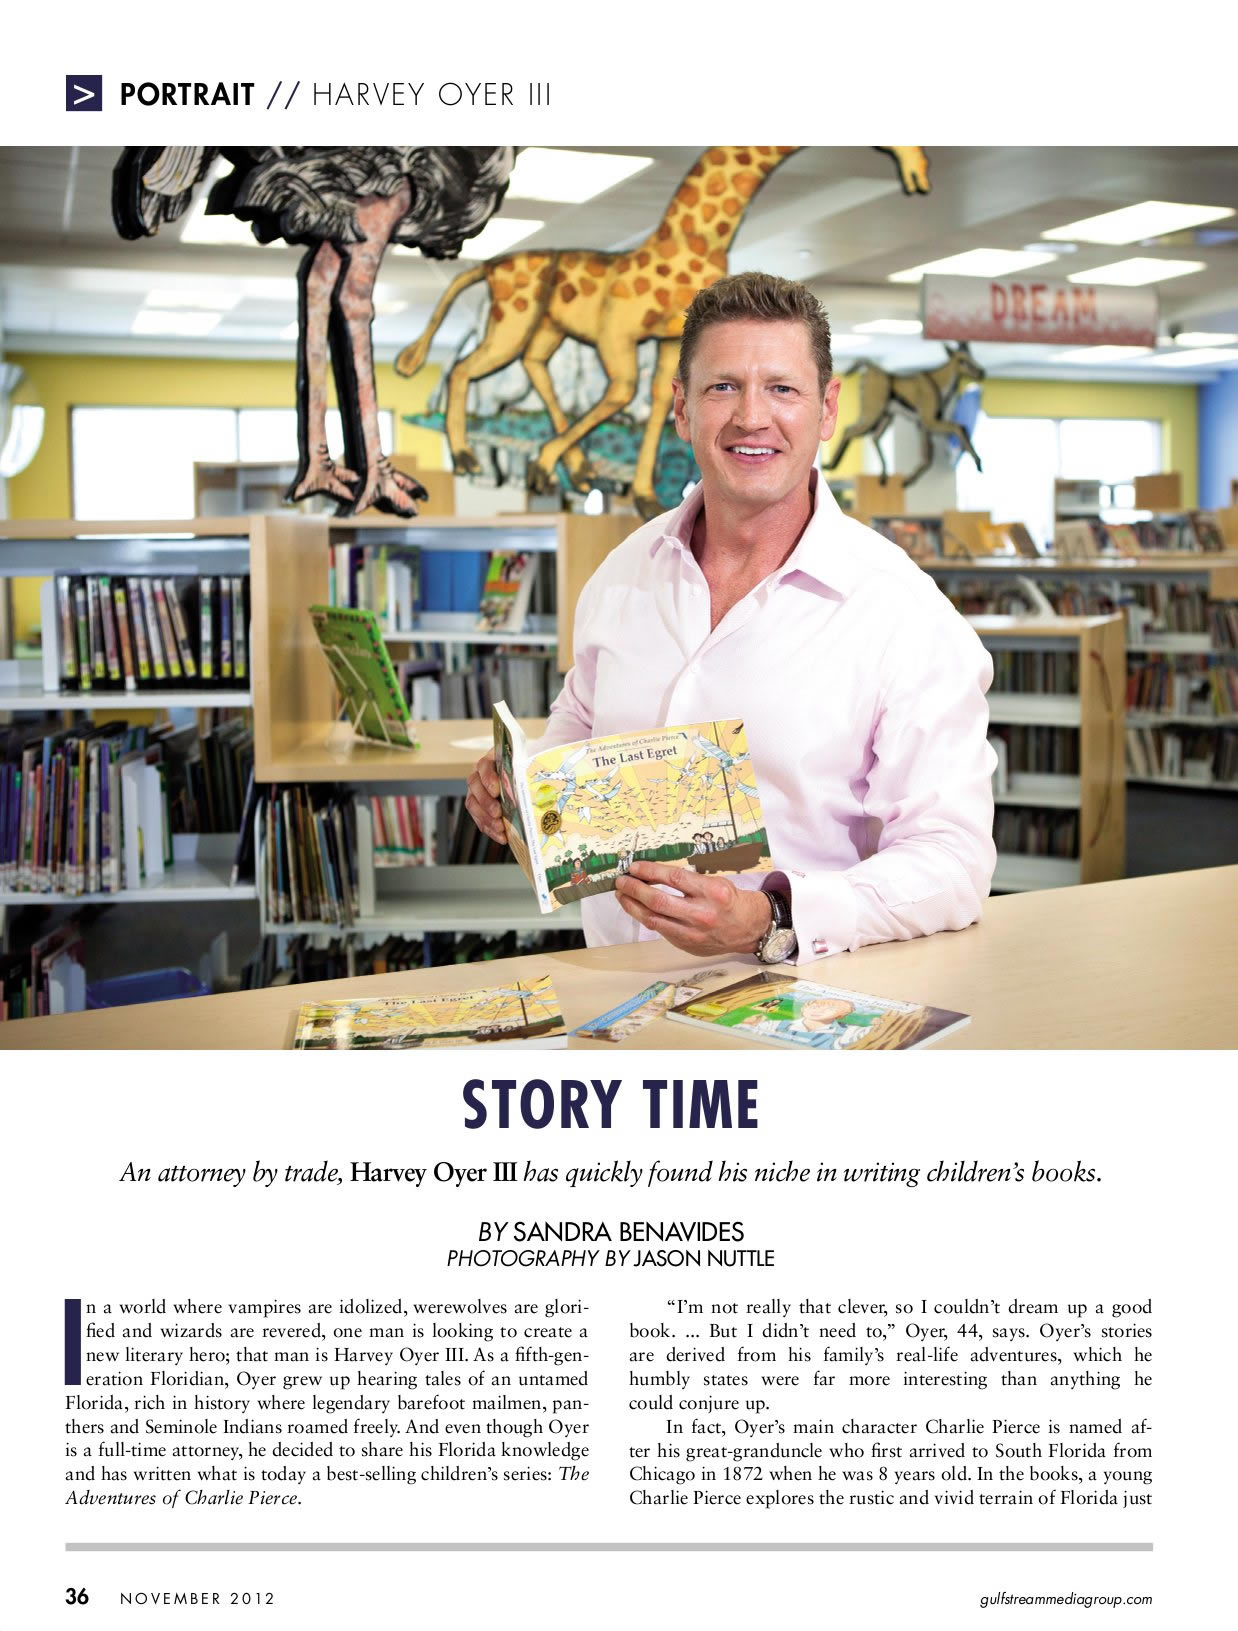 Harvey Oyer featured in The Palm Beacher